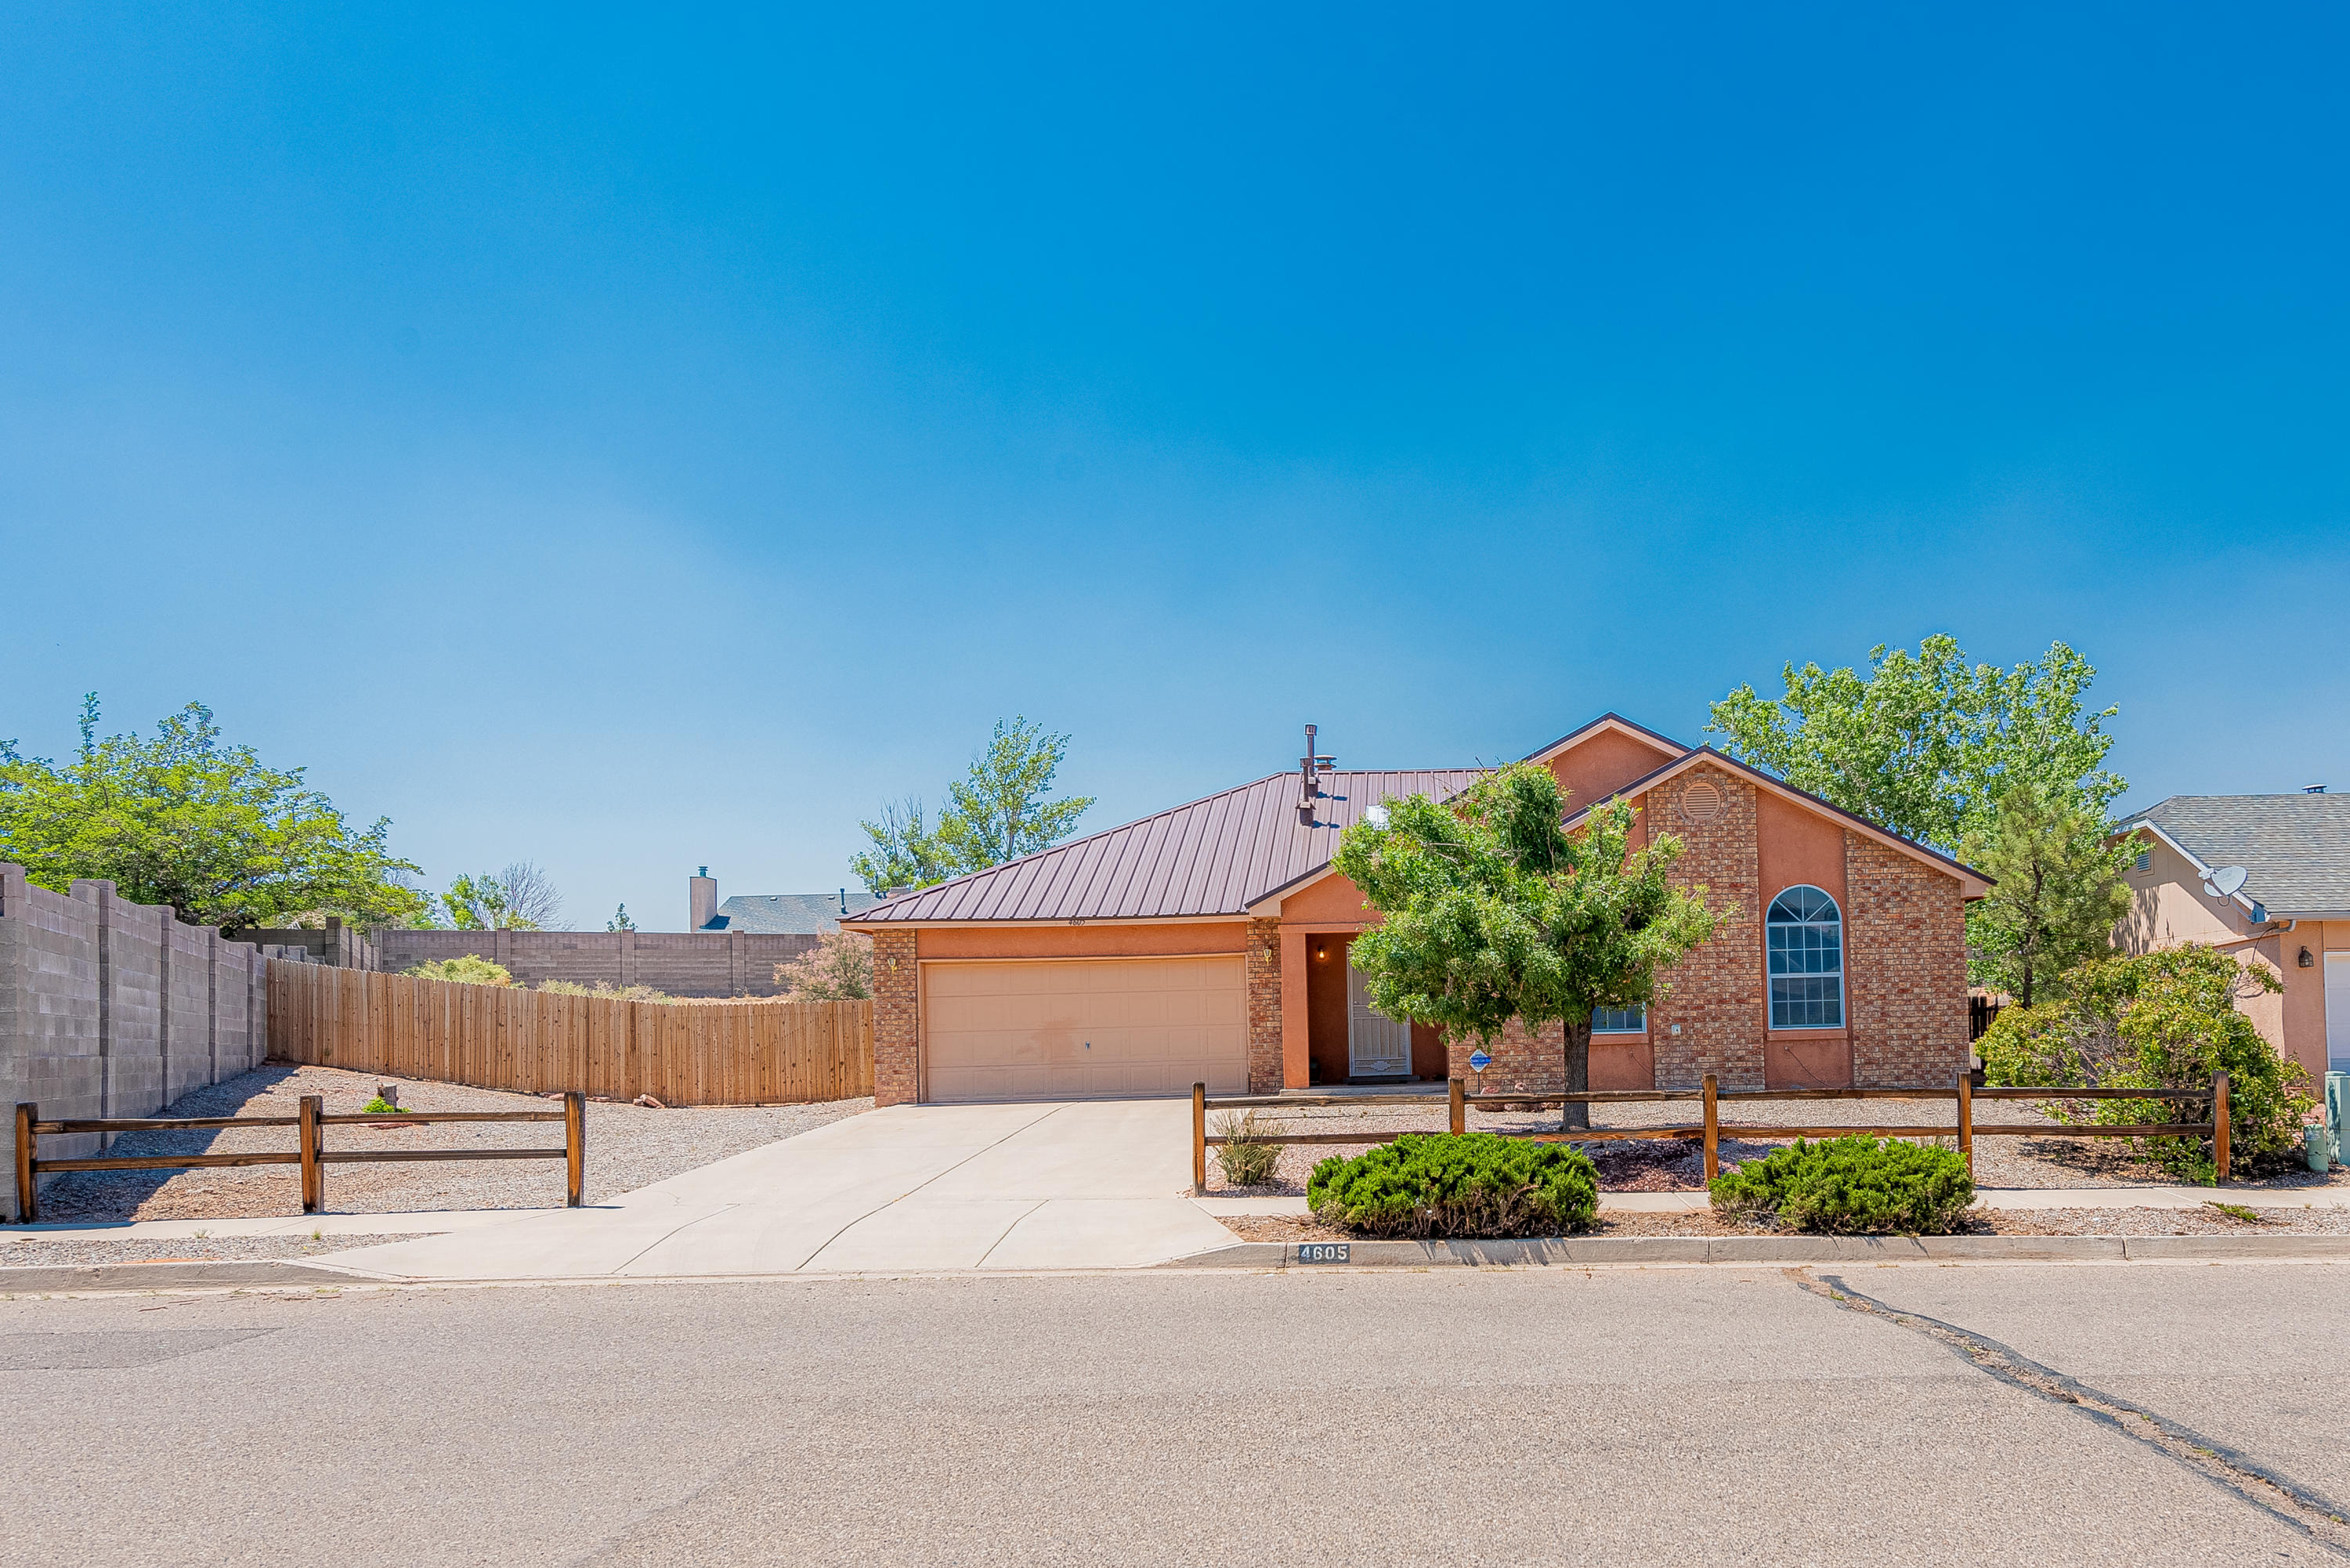 Welcome home to this Spectacular 4 bed 2 bath located in Enchanted Hills. This Gorgeous home offers a beautiful backsplash in the kitchen with matching countertops, pantry and tile in all the wet spots. Other recent upgrades include a new roof (2019) and new water heater(2019). You'll appreciate the massive backyard, just under a half acre. Perfect for entertaining with its covered patio and all the space you'll need for a basketball court, volleyball, horse shoes, cornhole etc. With backyard access, you can also park any toys you desire. Move in ready homes are moving fast so if you can only see a few homes makes sure this one is on your list!!